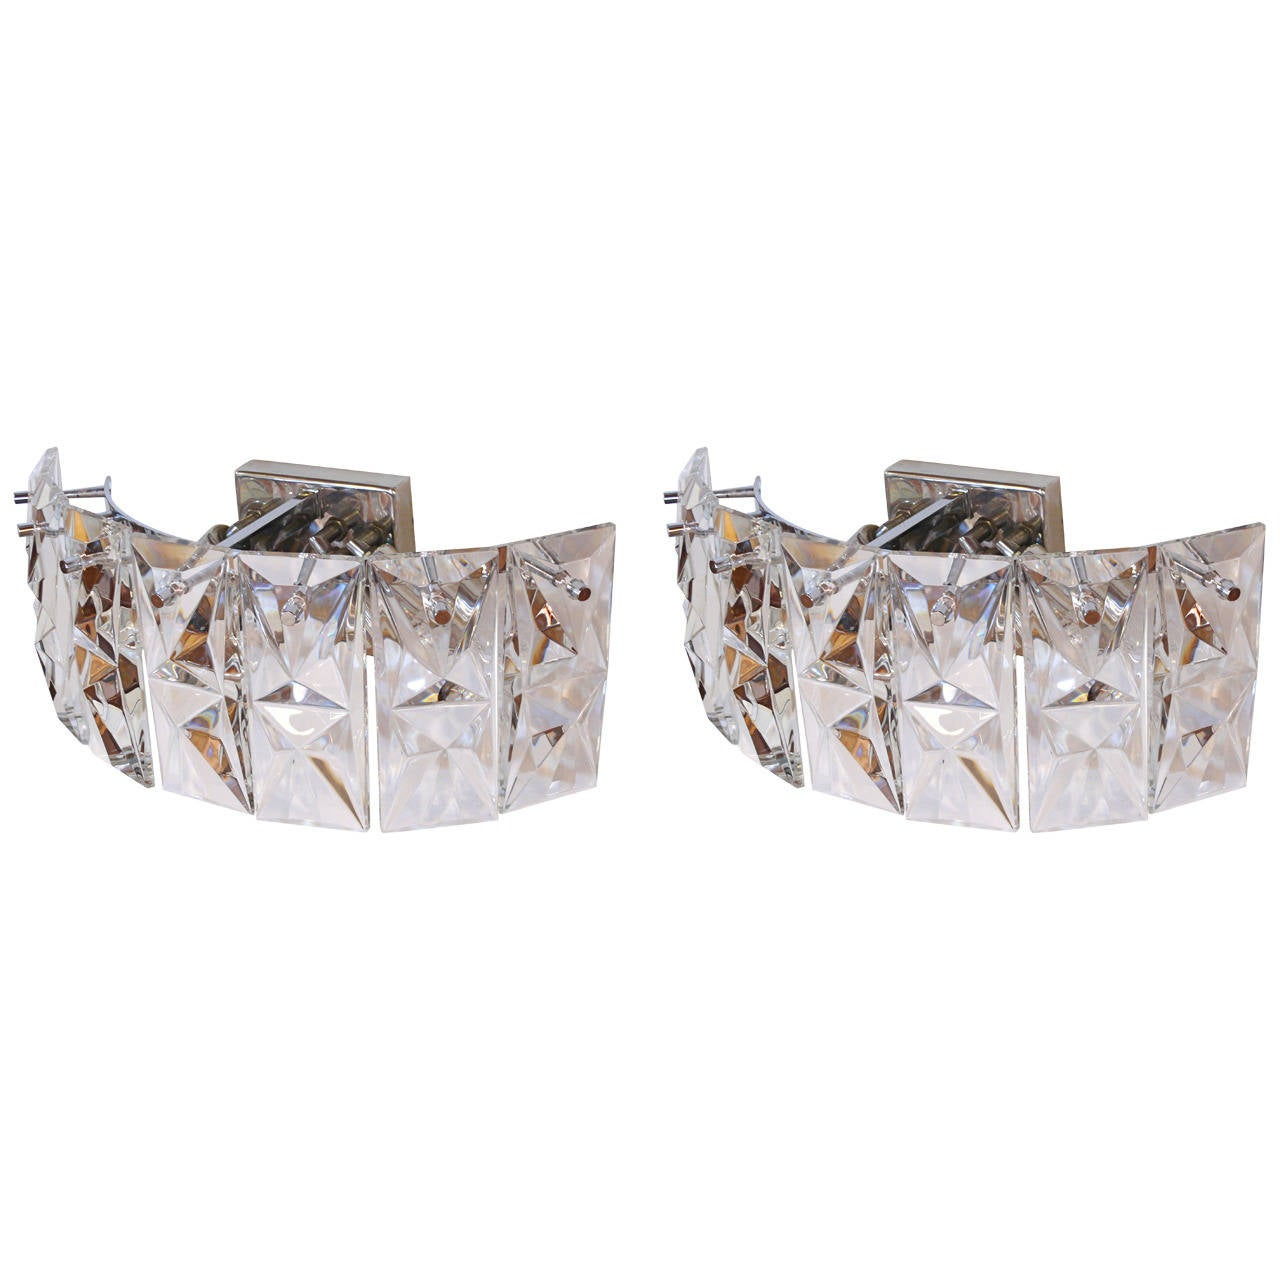 Pair of Prismatic Glass Sconces by Kindeley 1